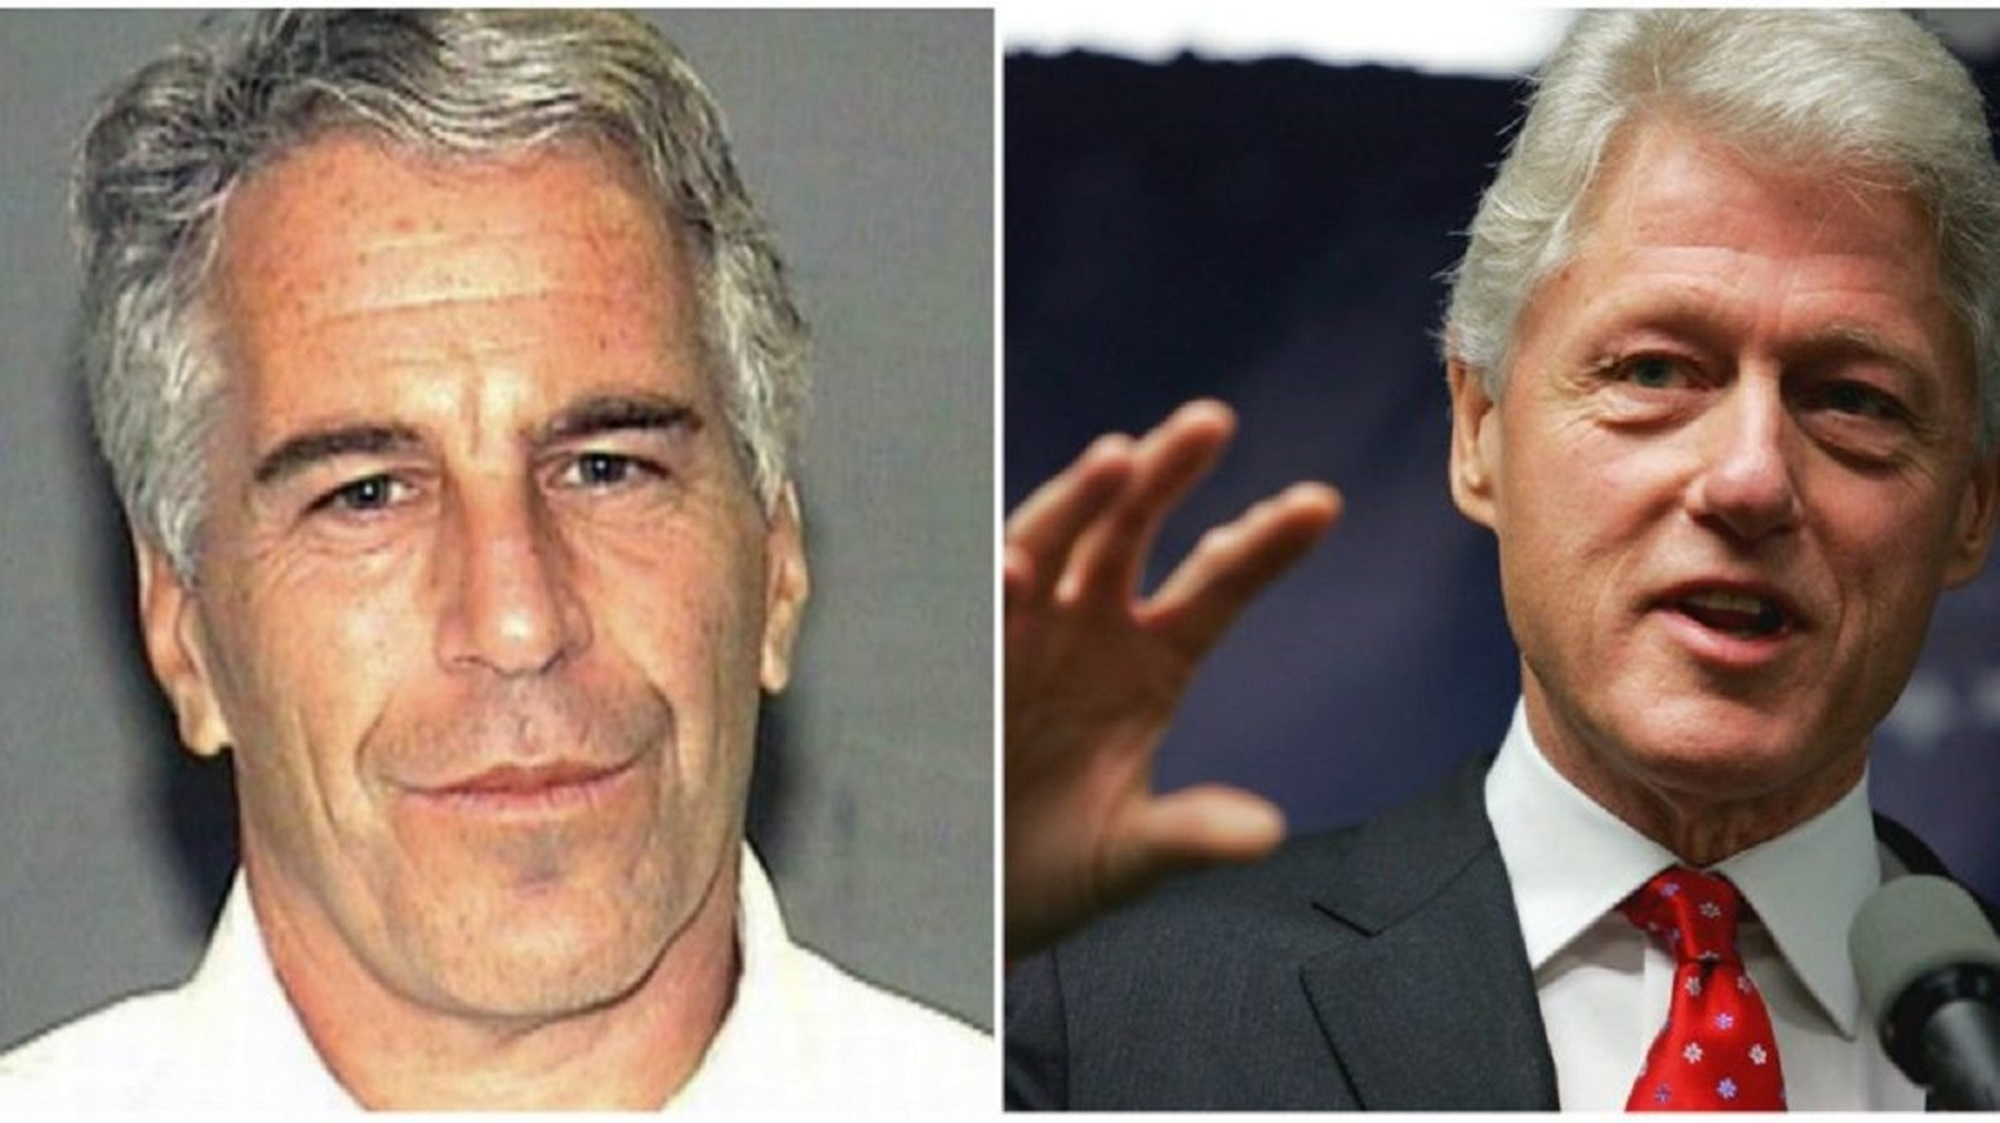 Jeffrey Epstein Arrest Has DC's Powerful Leaders Shaking In Fear